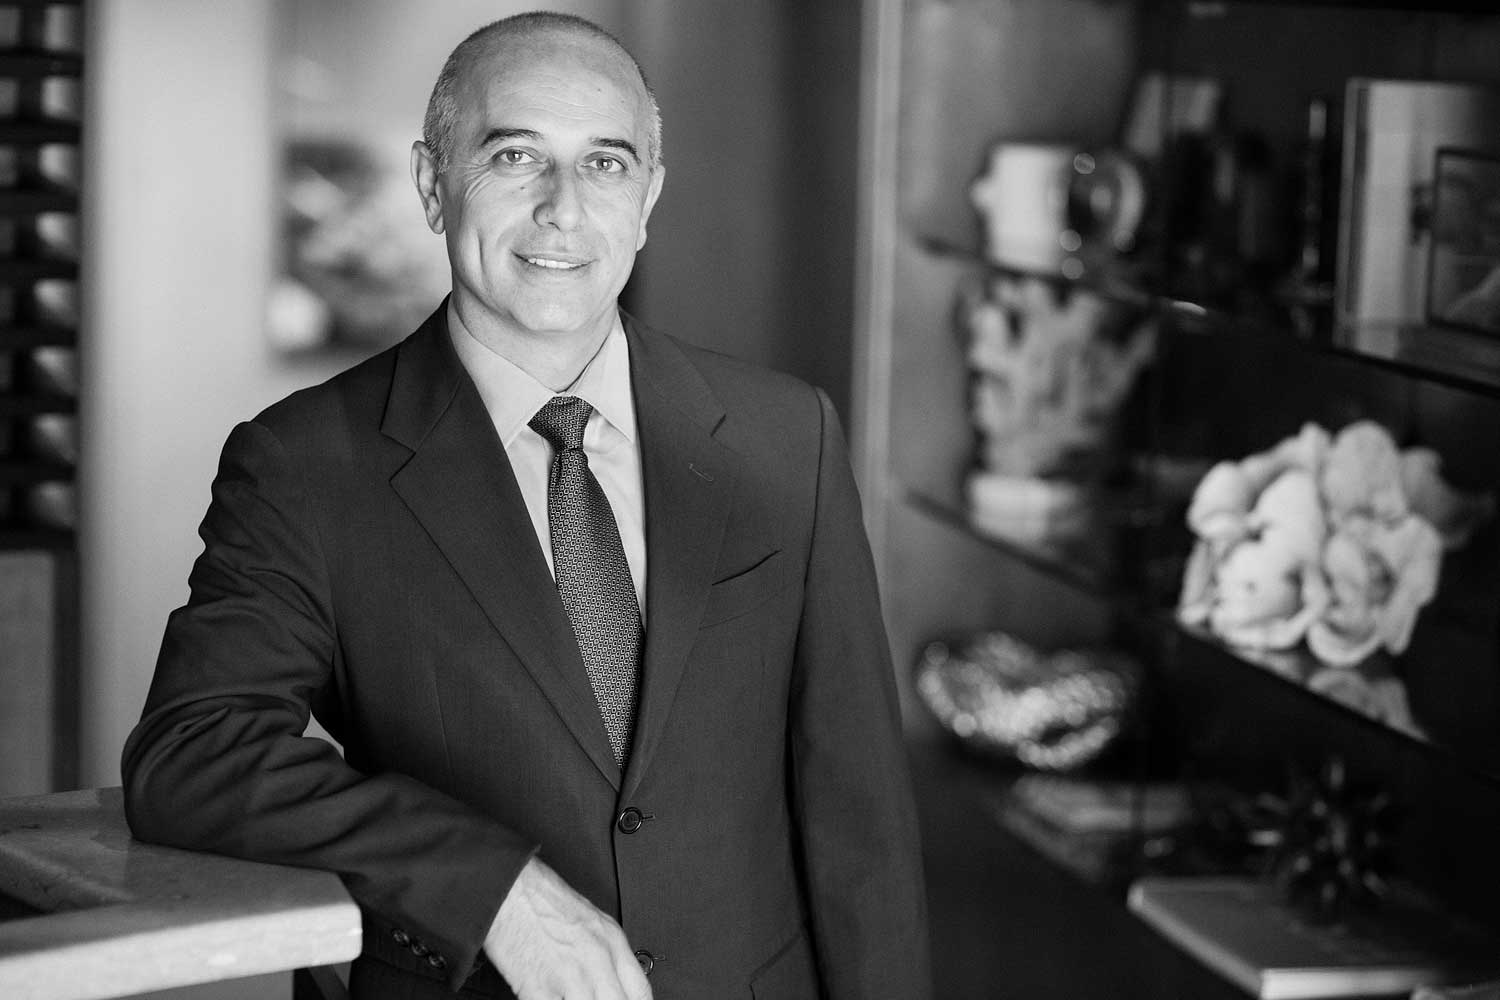 Portrait of Donato Poto, Co-owner and General Manager